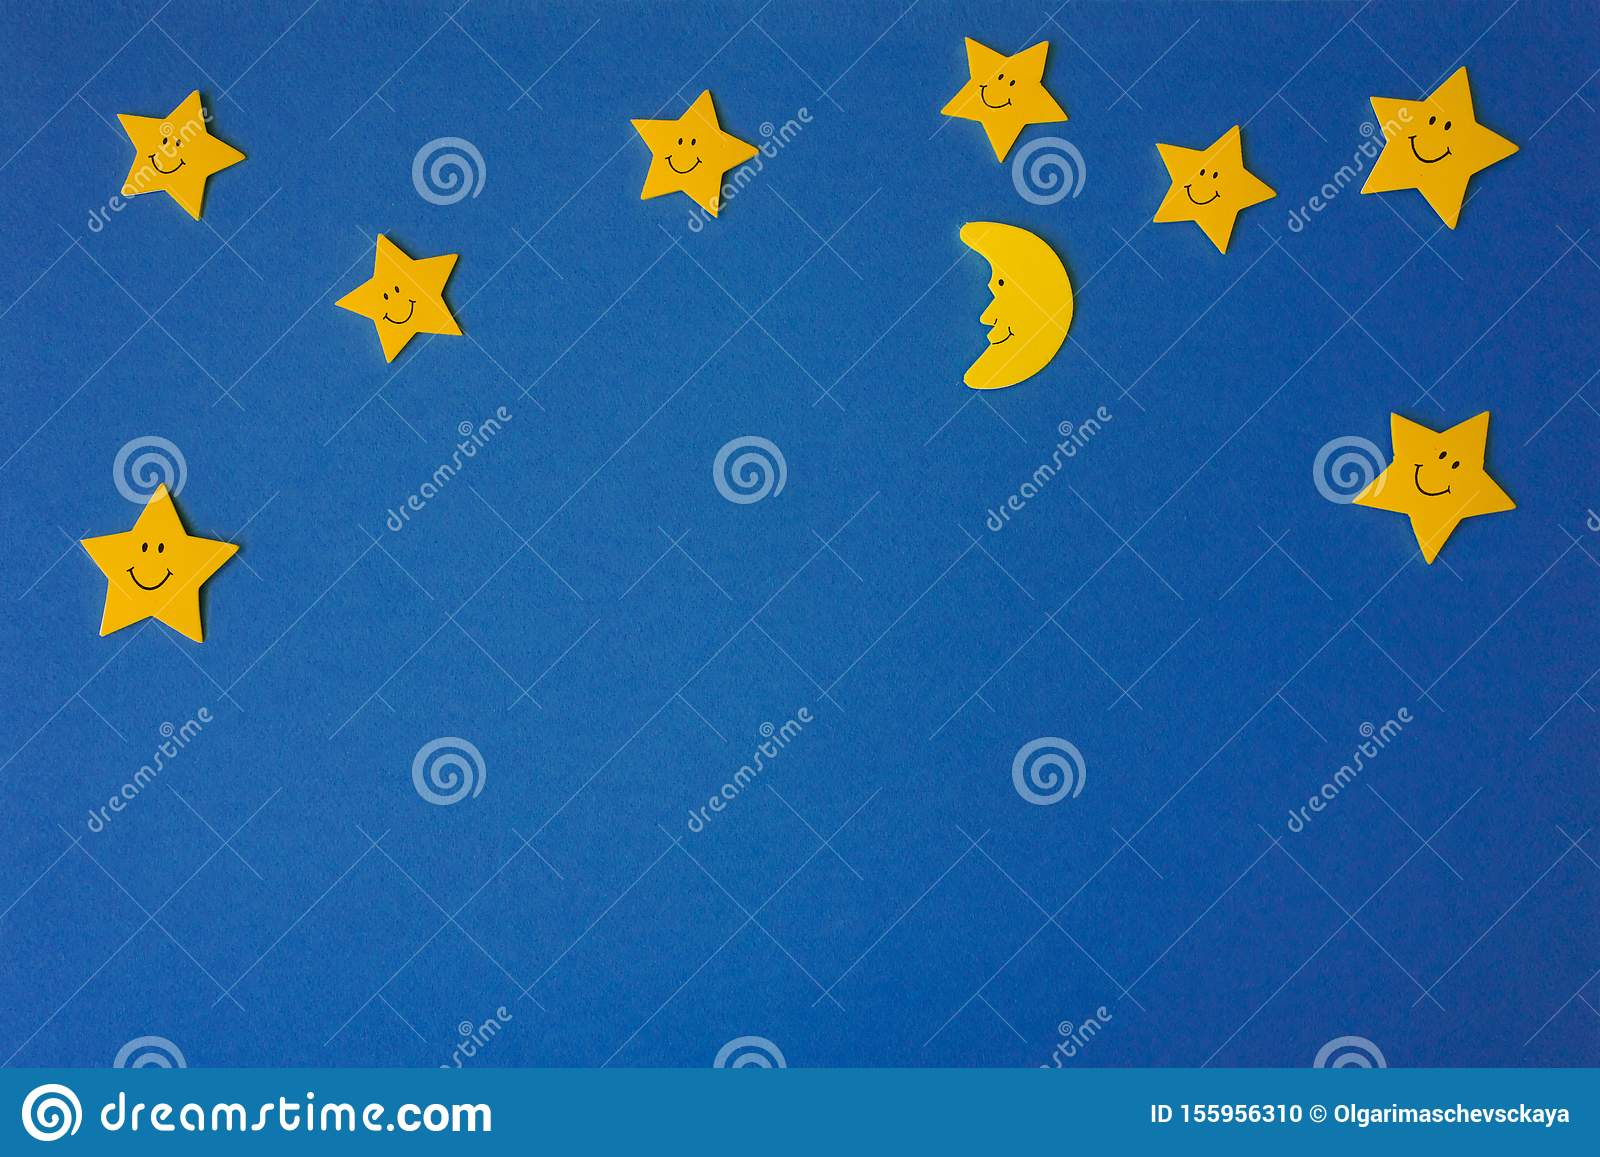 Crescent moon and yellow stars against the blue night sky. Application paper